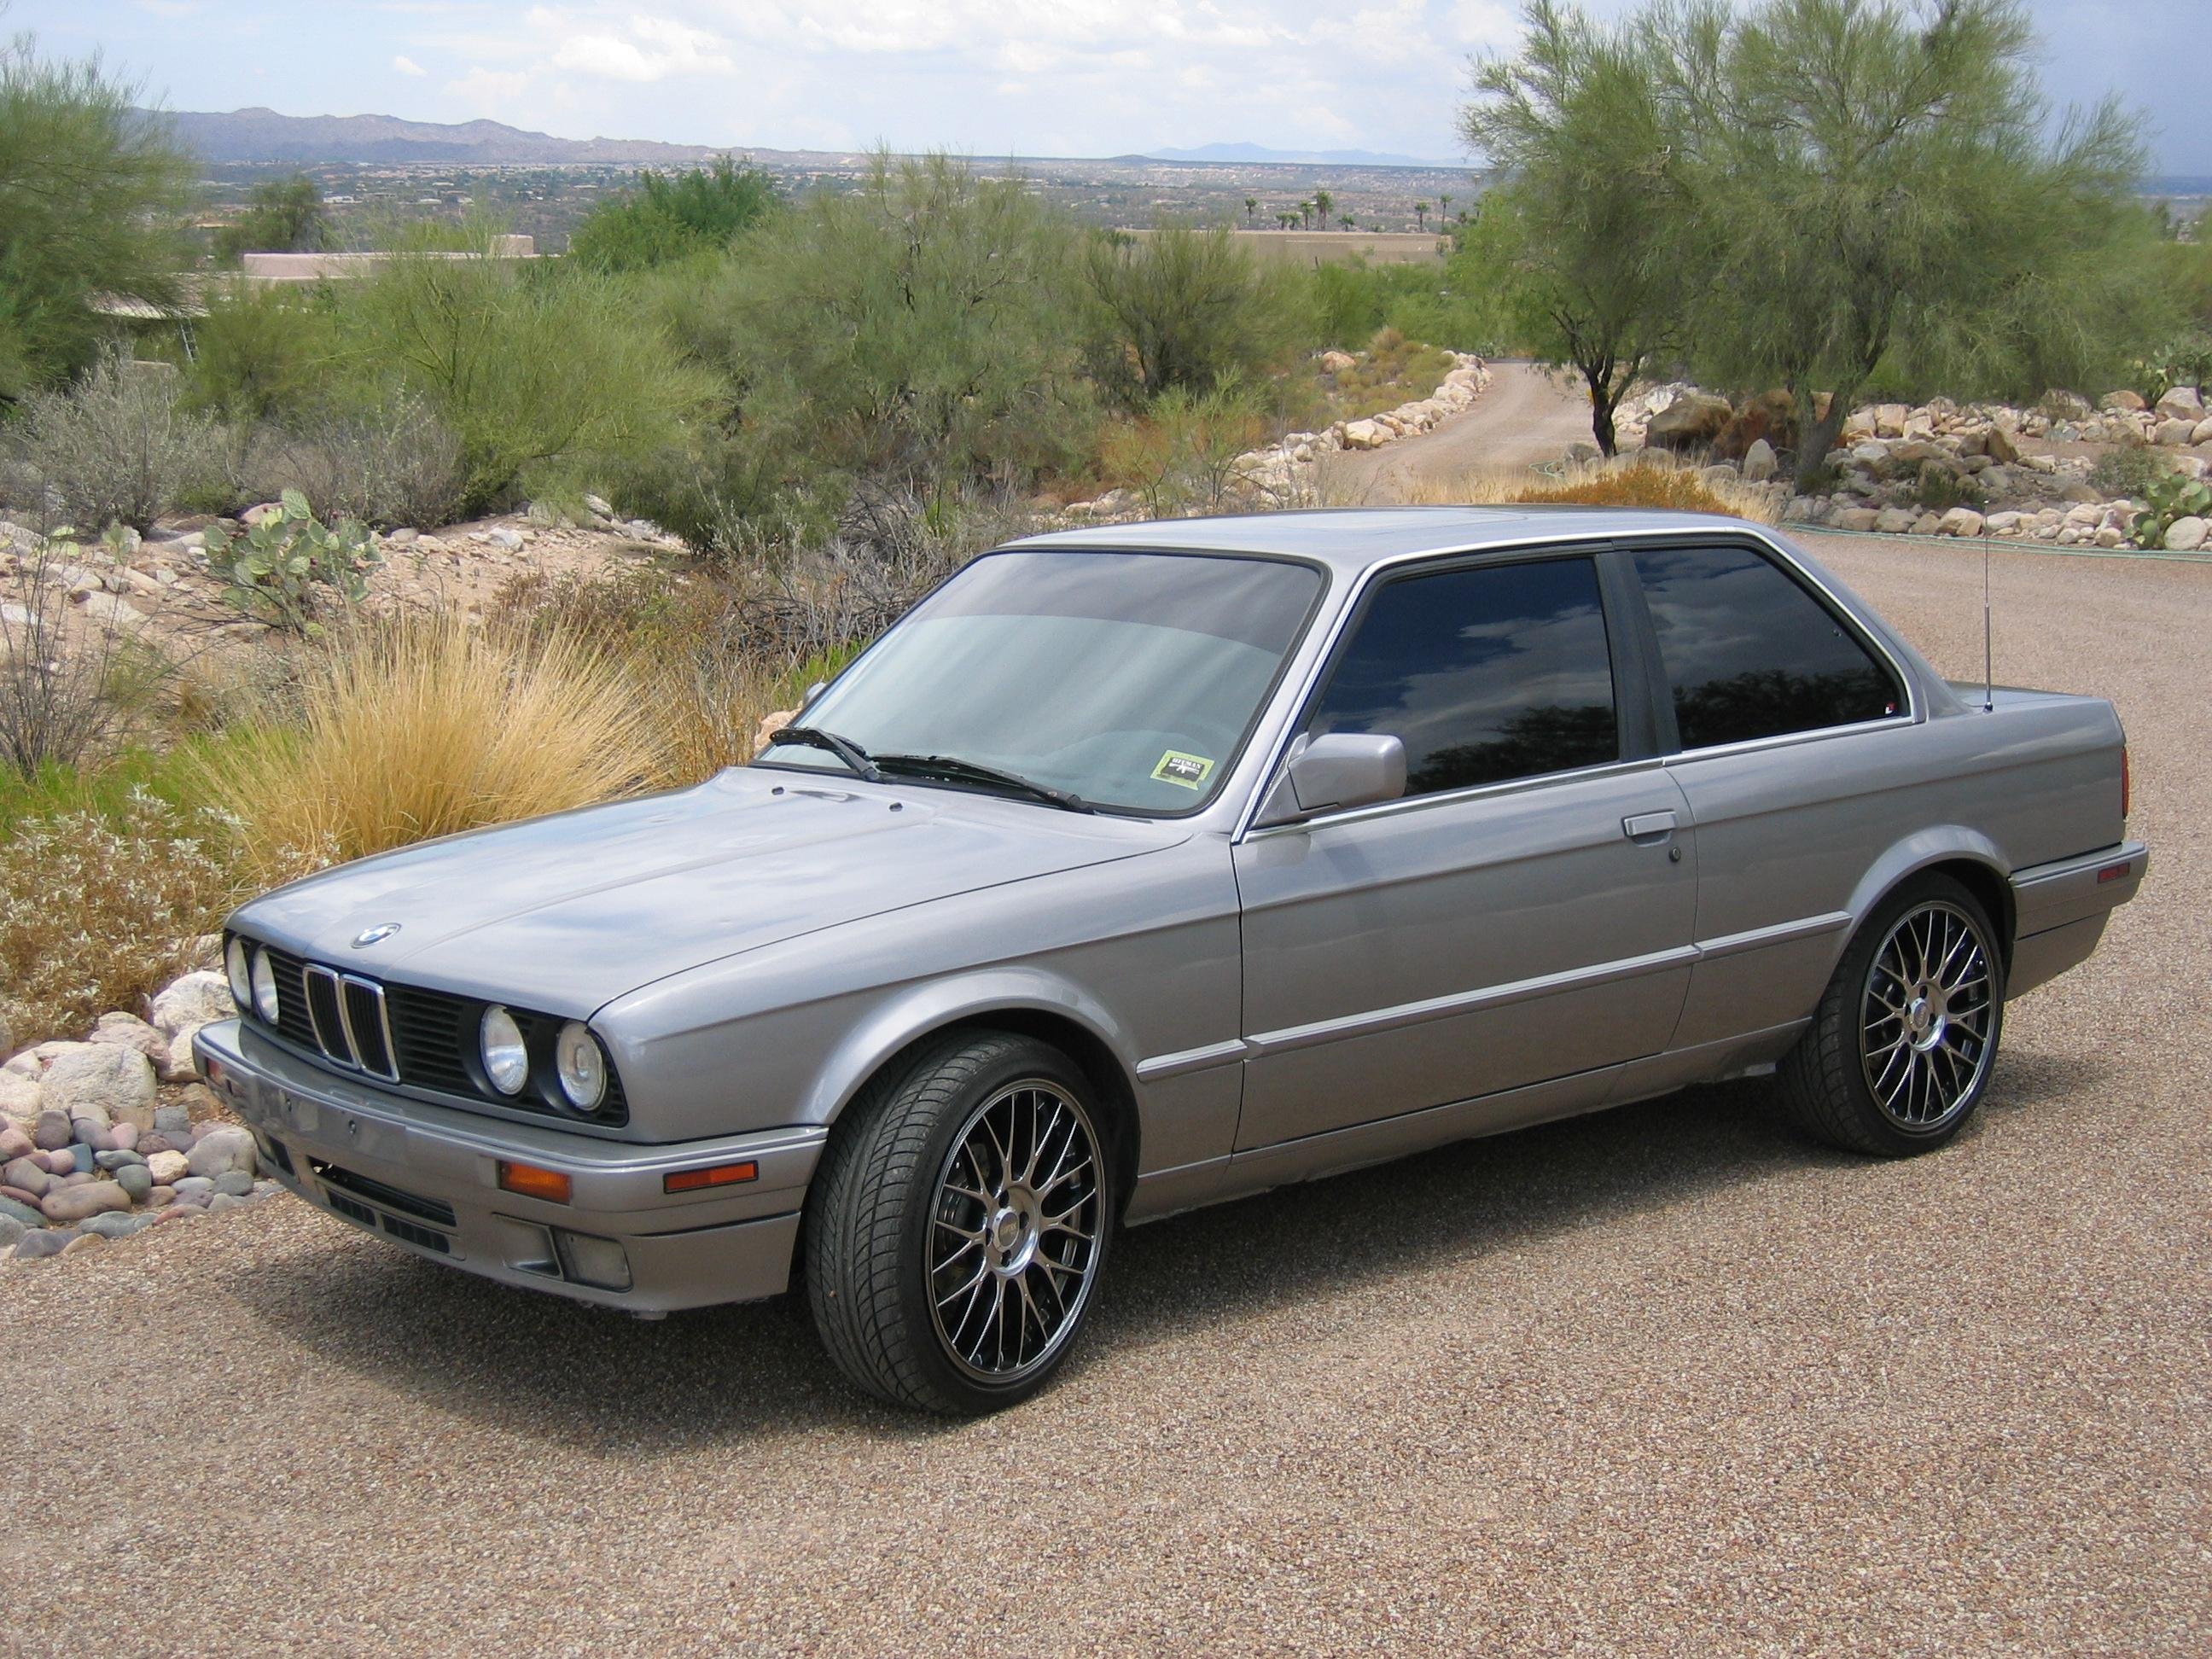 BMW 3 series 323i 1989 photo - 5